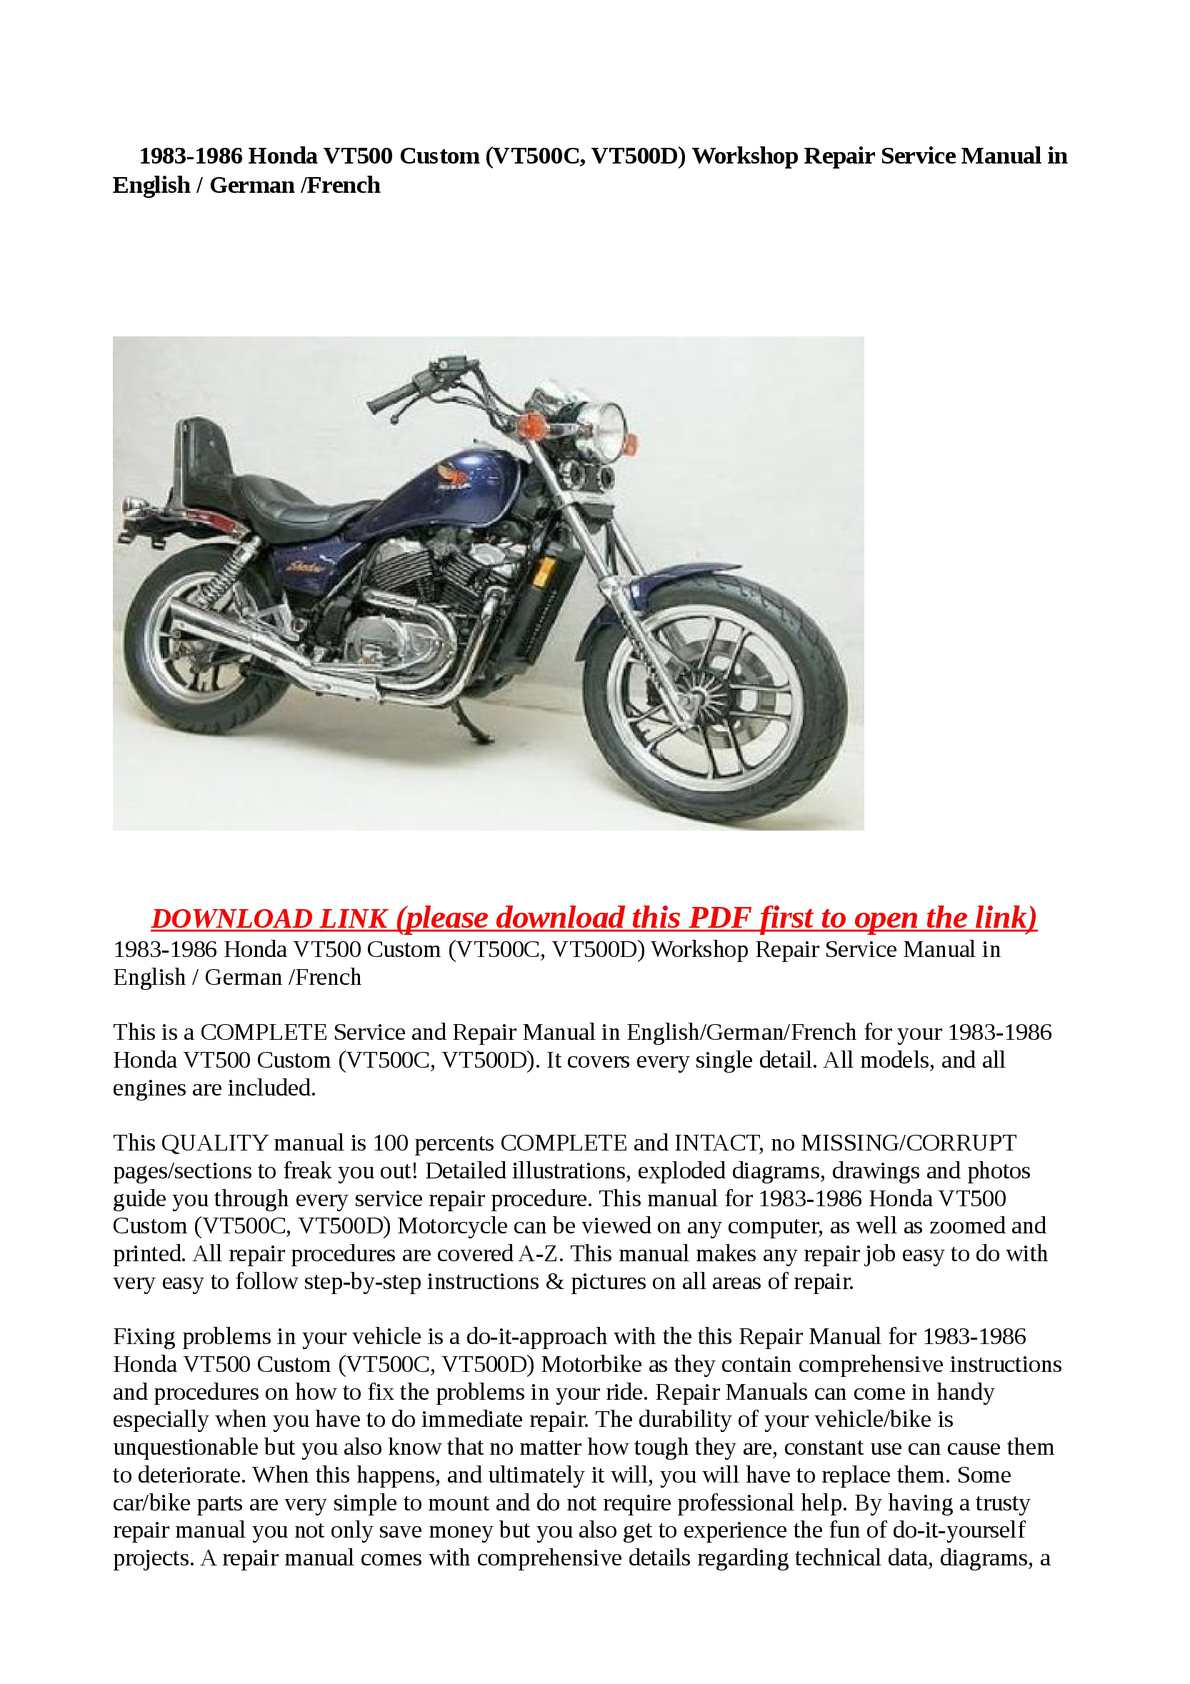 Calaméo - 1983-1986 Honda VT500 Custom (VT500C, VT500D) Workshop Repair  Service Manual in English / German /French